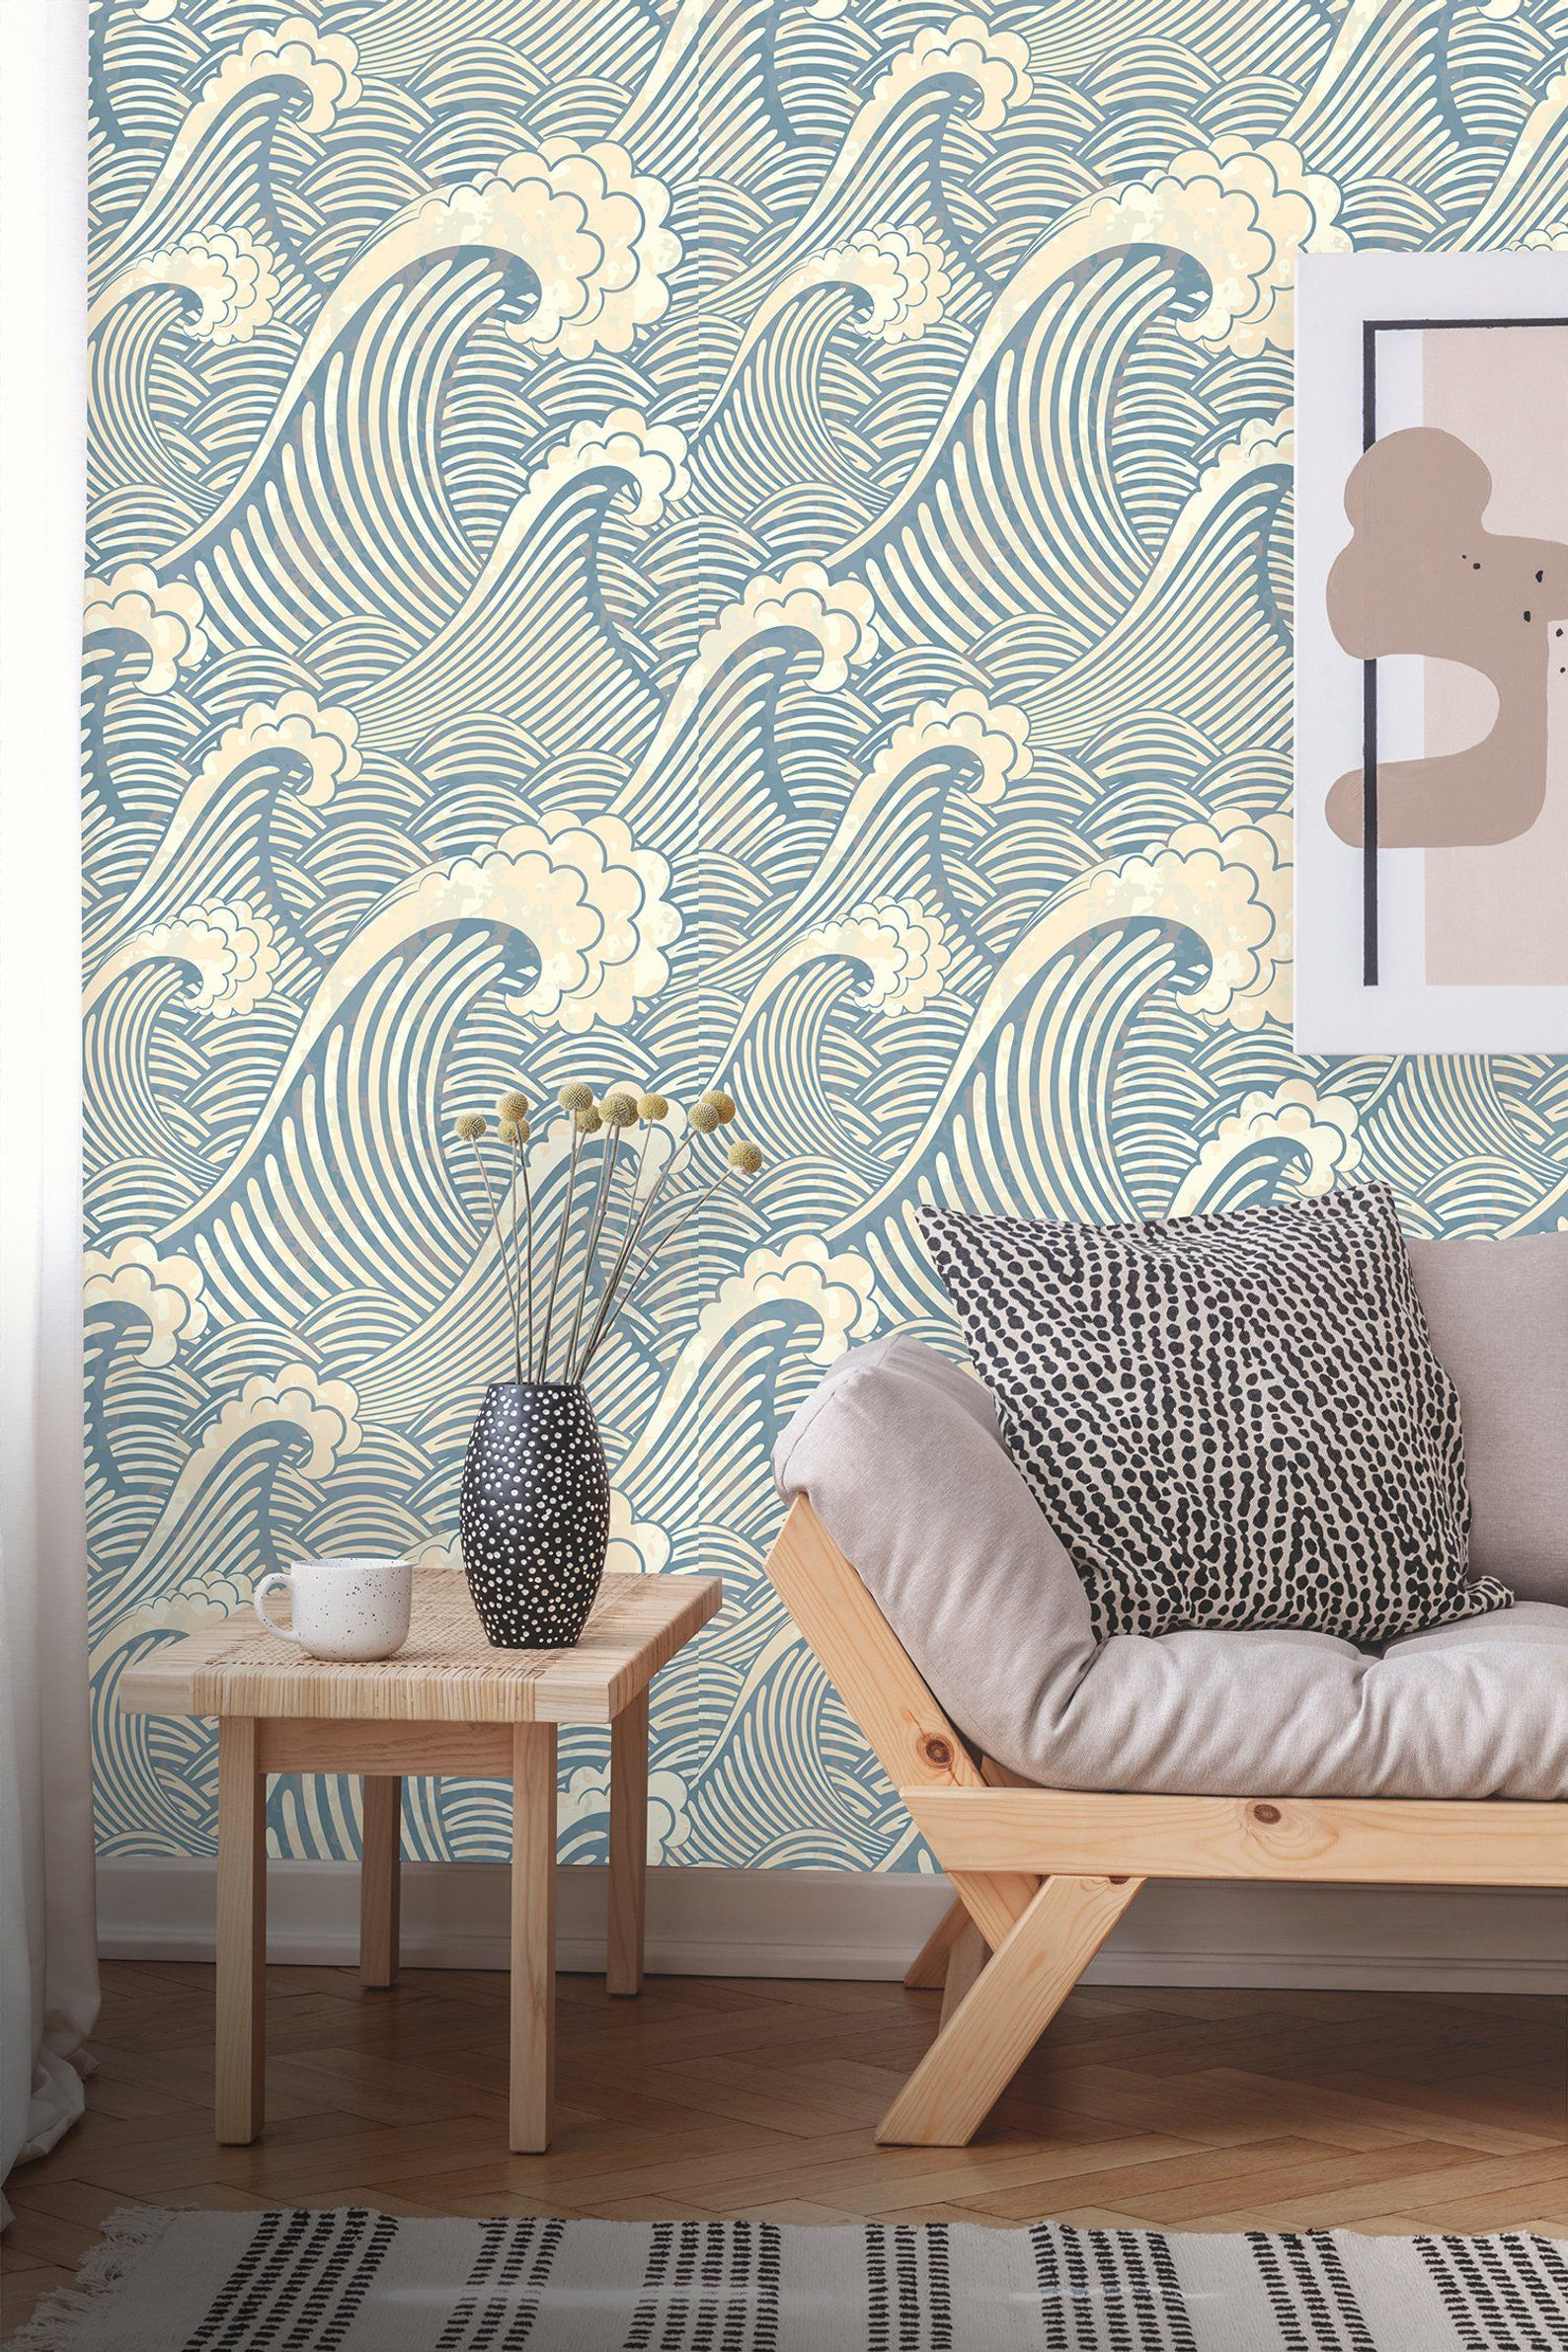 Removable Wallpaper Peel And Stick Wallpaper Herringbone Wallpaper Grey Wallpaper Nursery Wallpaper Nursery Decor Self Adhesive Herringbone Wallpaper Grey And White Wallpaper Grey Wallpaper